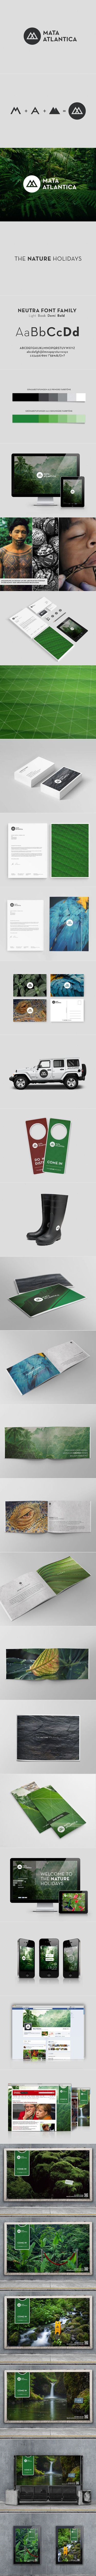 Mata Atlântica by Laurin Soares | #stationary #corporate #design #corporatedesign #identity #branding #marketing < repinned by www.BlickeDeeler.de | Visit our website: www.blickedeeler.de/leistungen/corporate-design